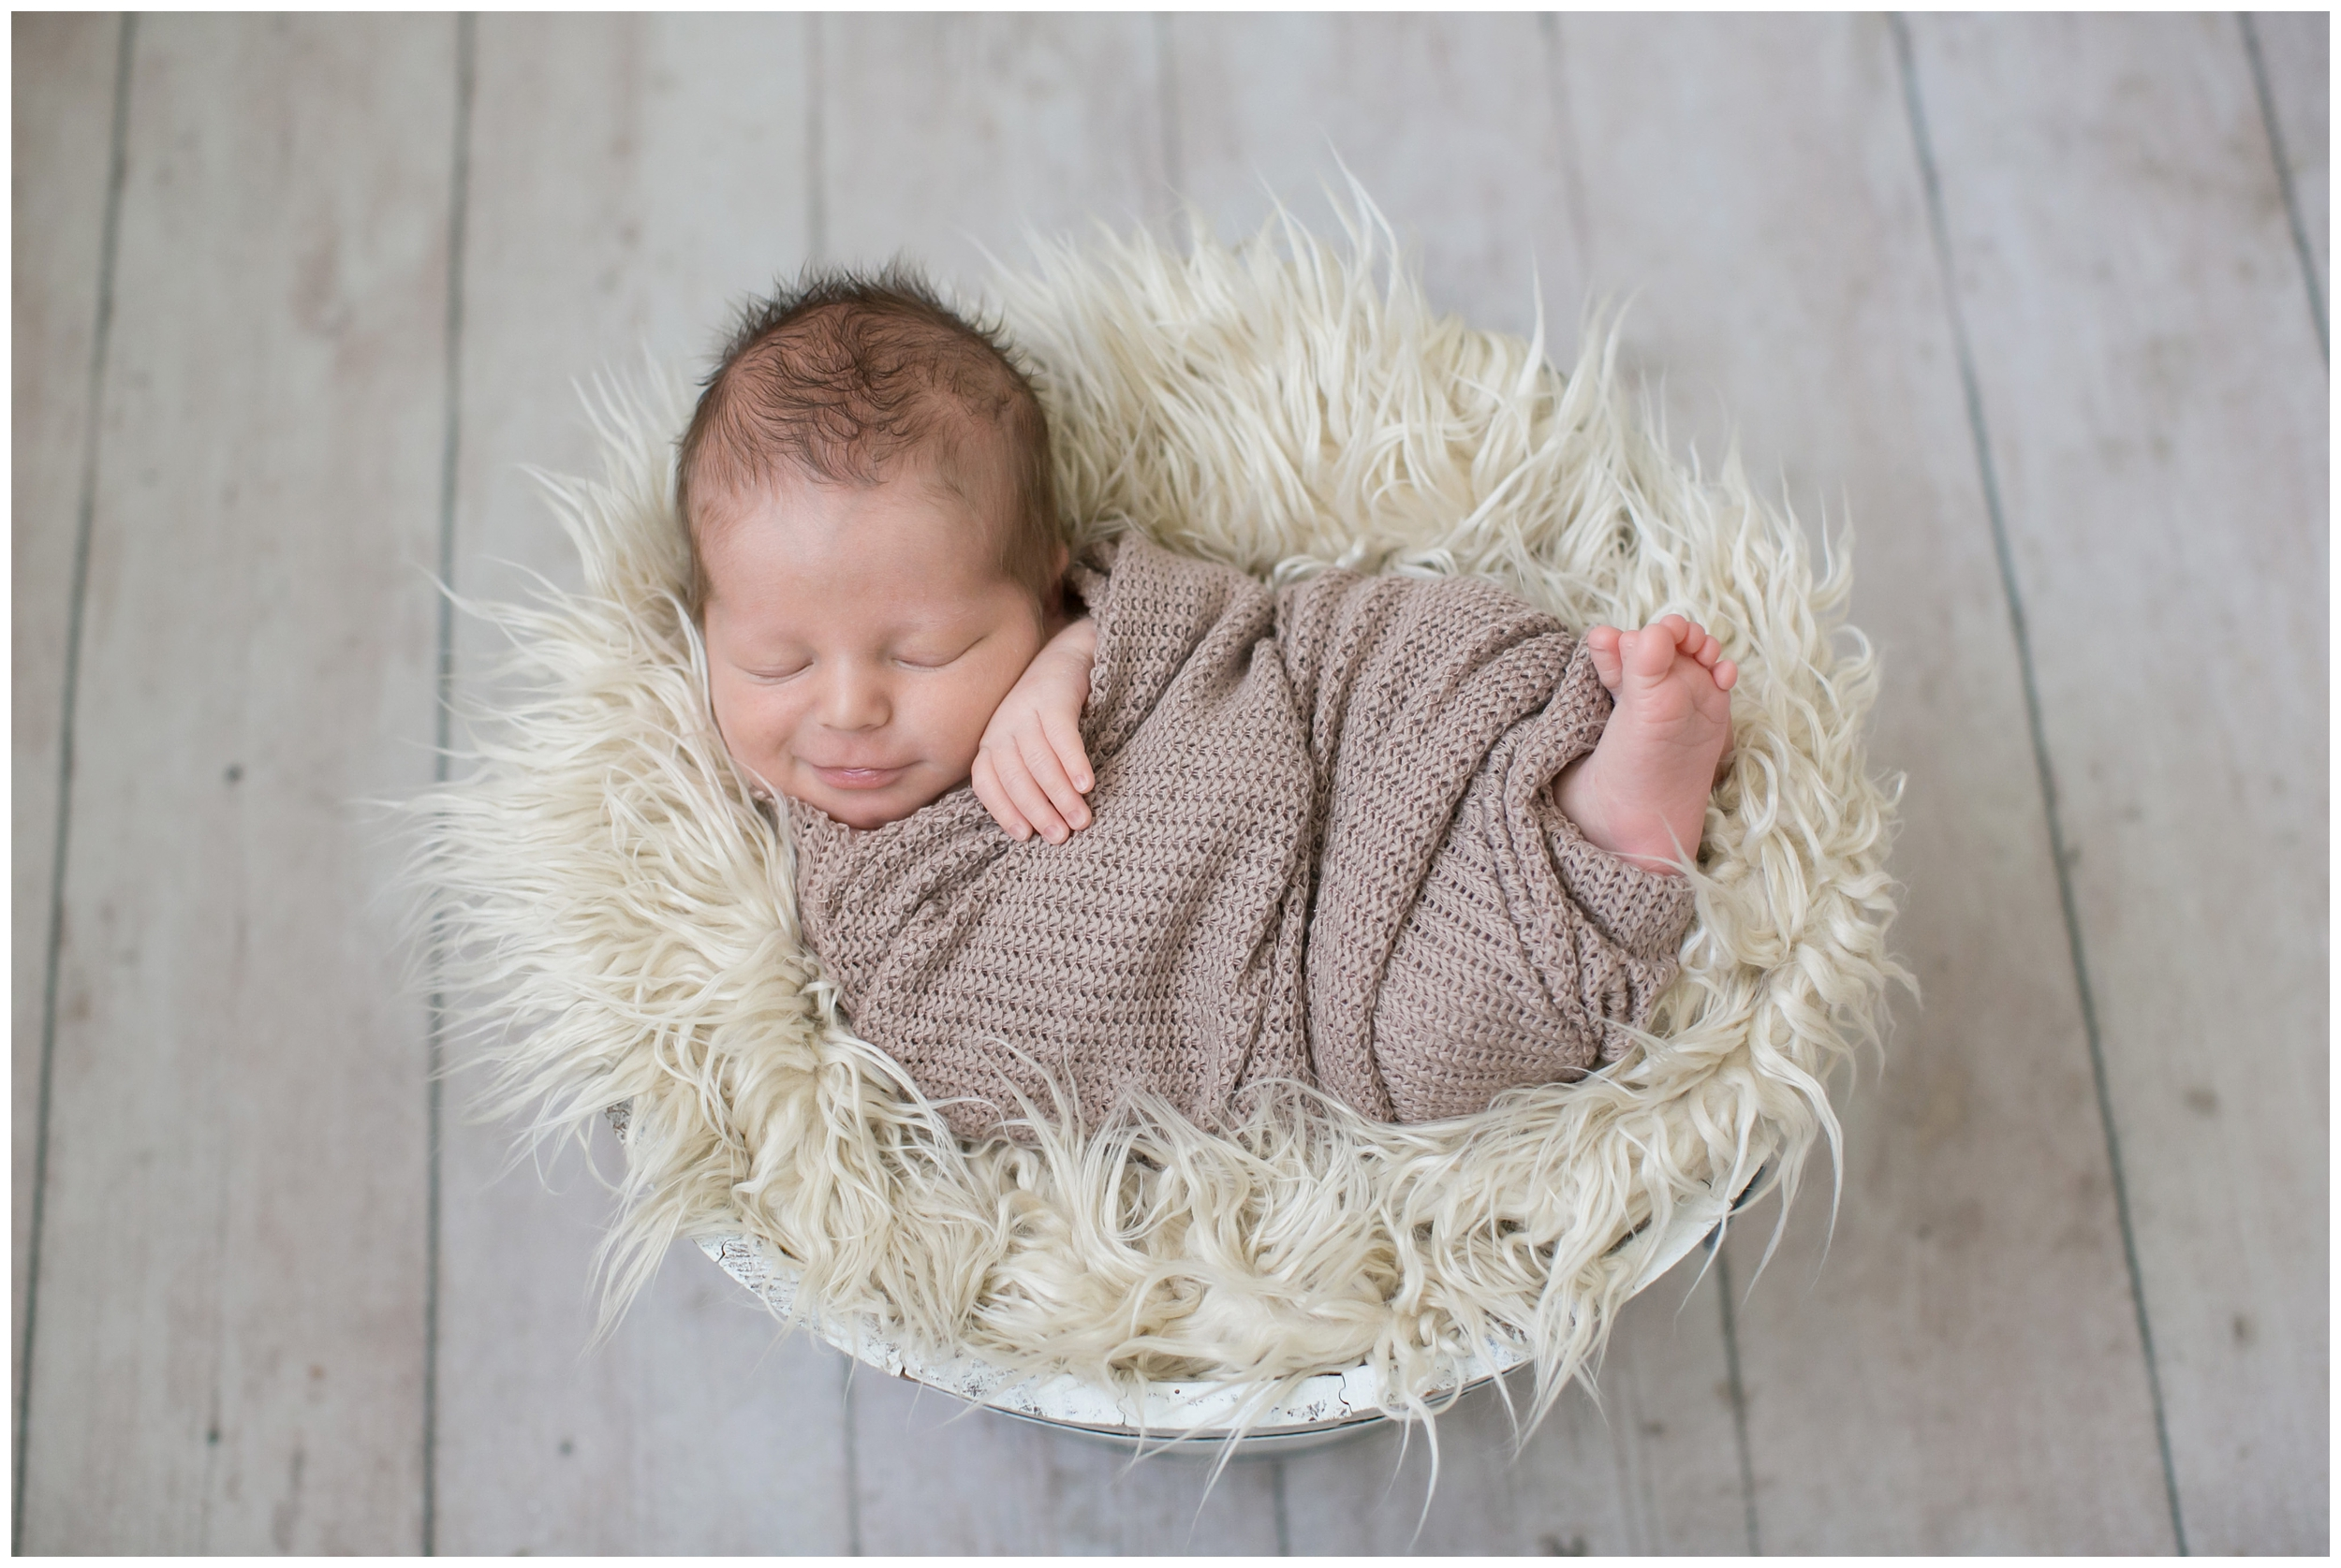 baby-collection-carrie-vines-redlands-portrait-photograhy-029.jpg